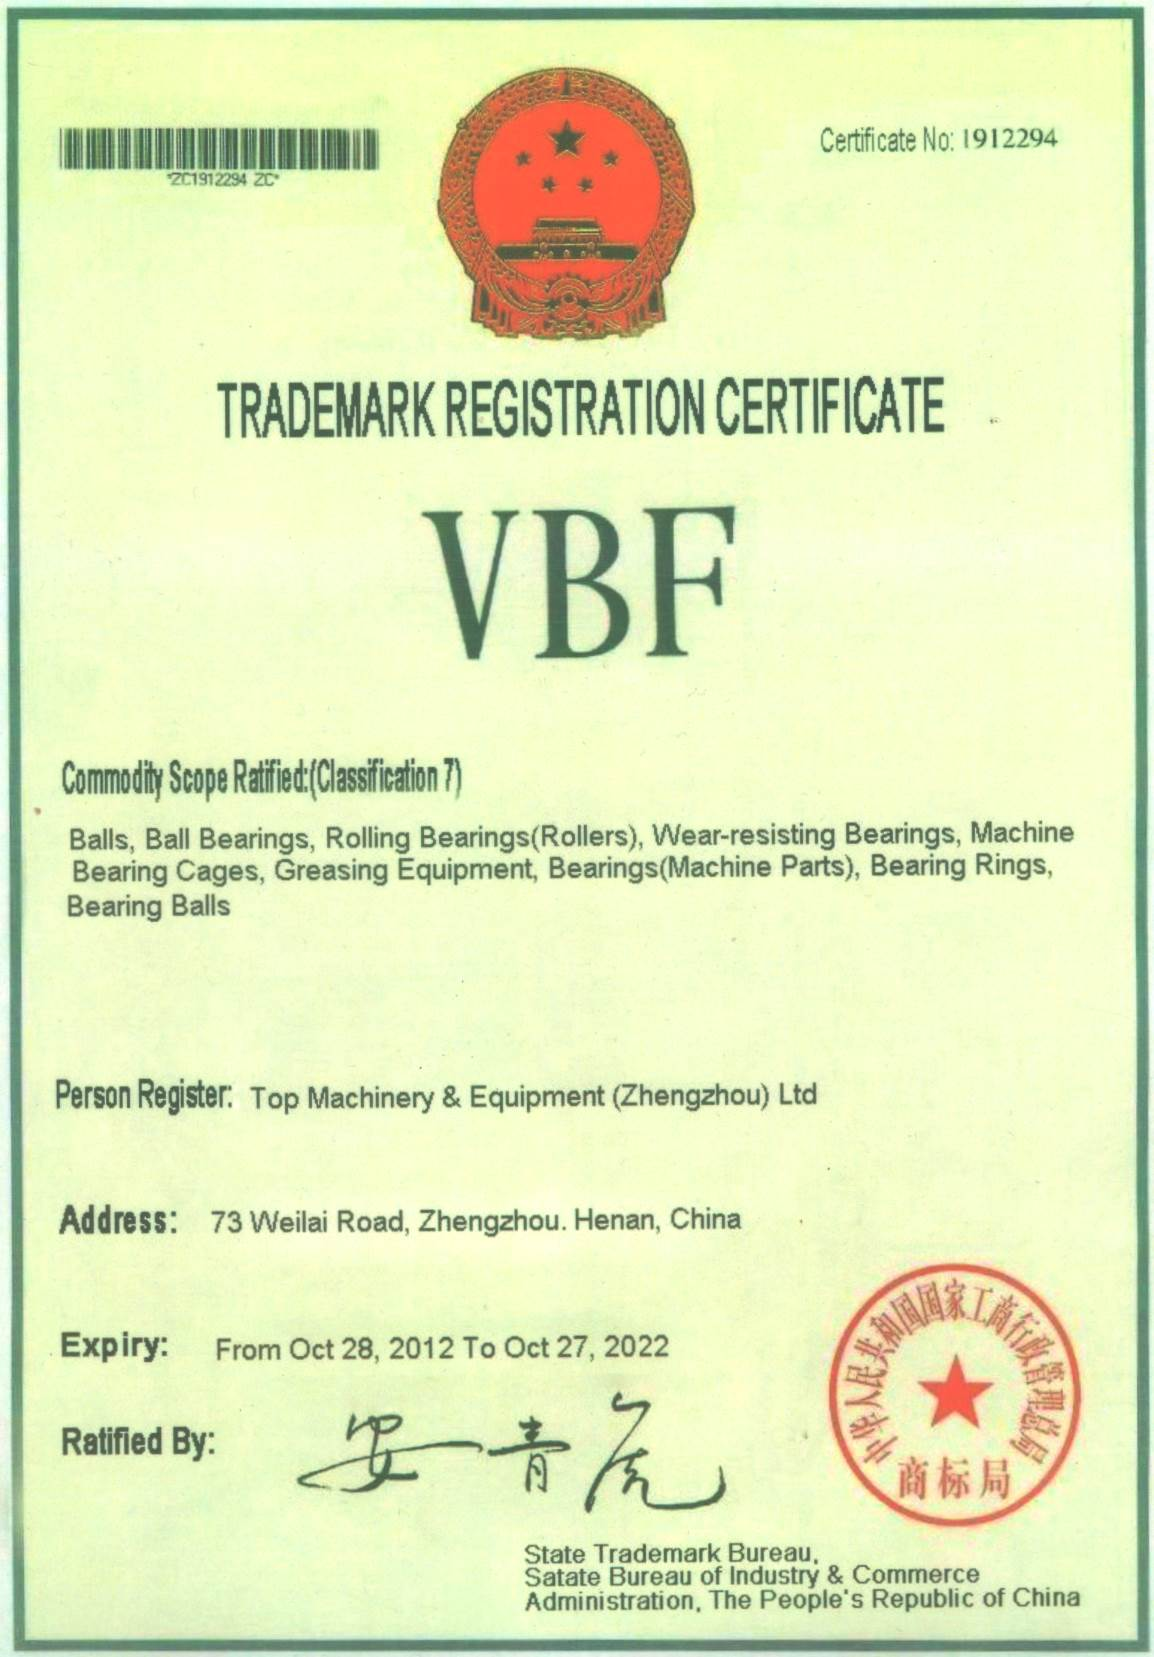 Trademark registration certificate VBF